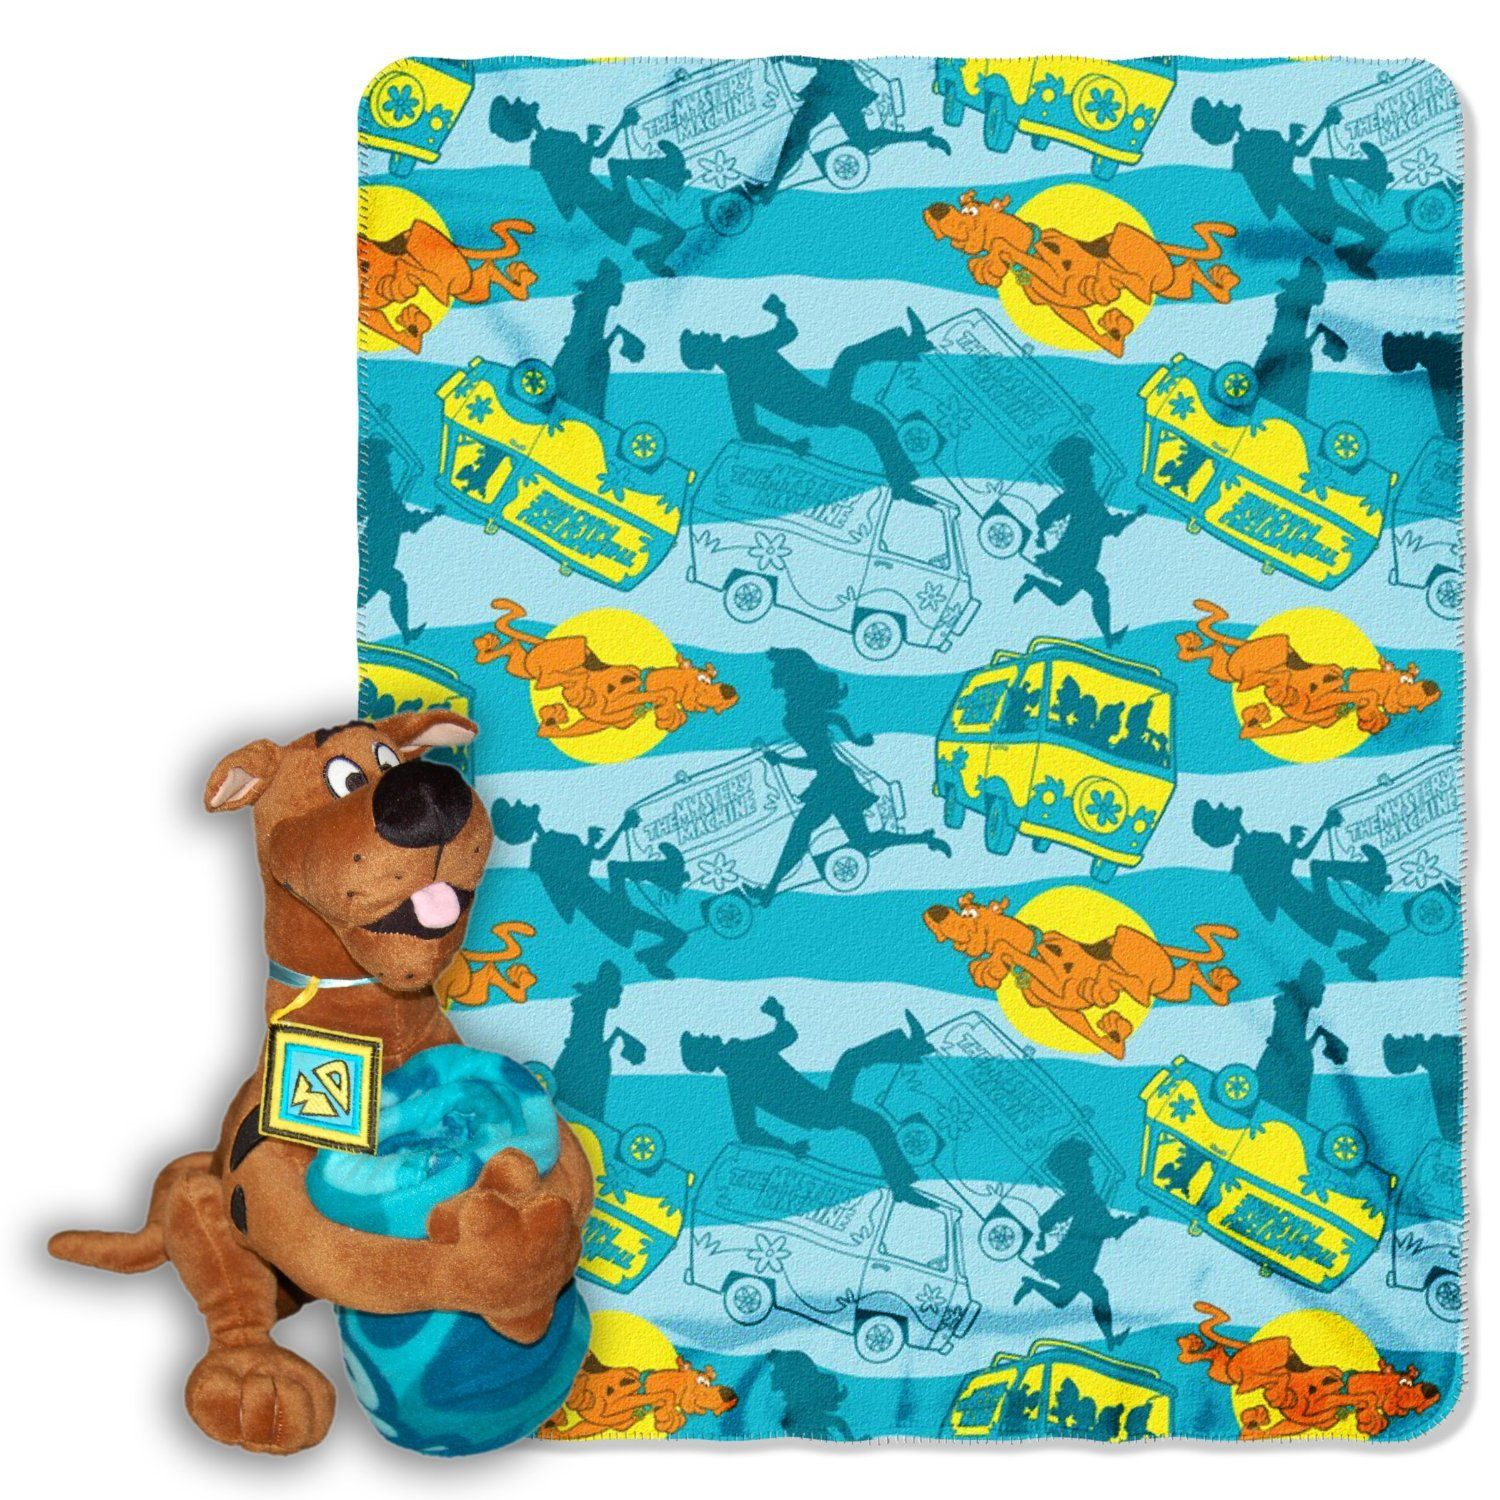 Scooby Doo Bedroom Accessories Scooby Doo Blanket With Pillow Plush Bedroom Theme Pinterest